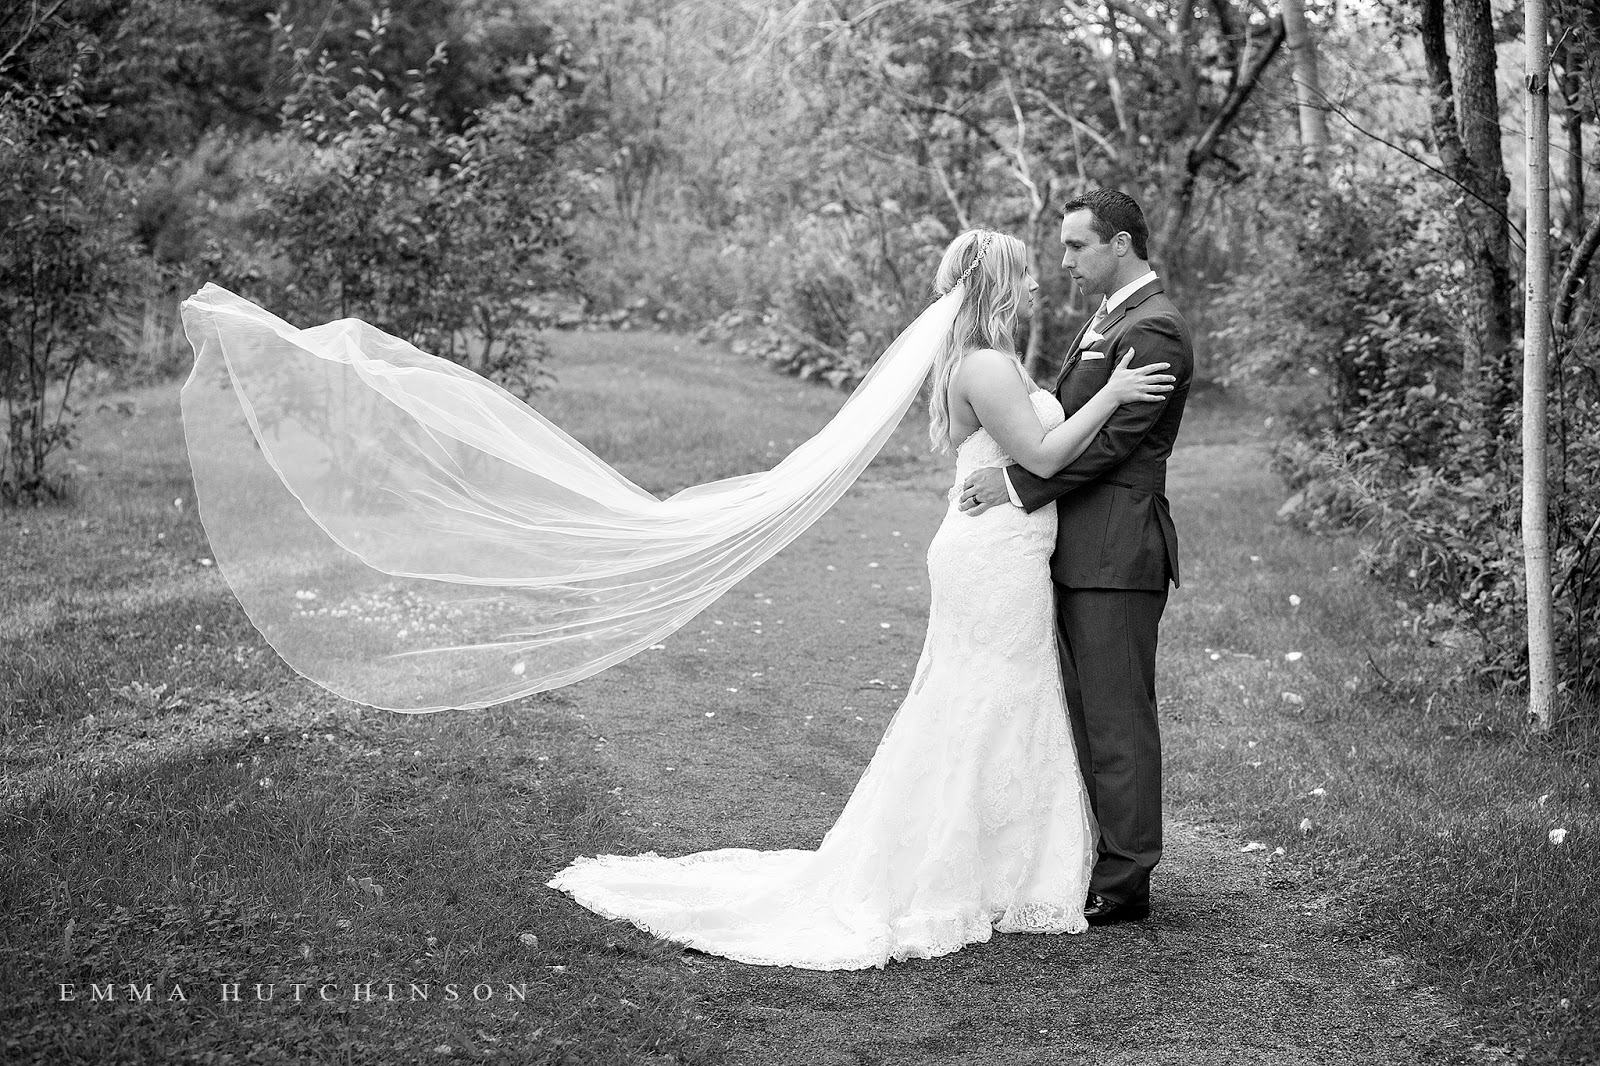 Grand Falls Windsor weddings - wedding photography by Emma Hutchinson